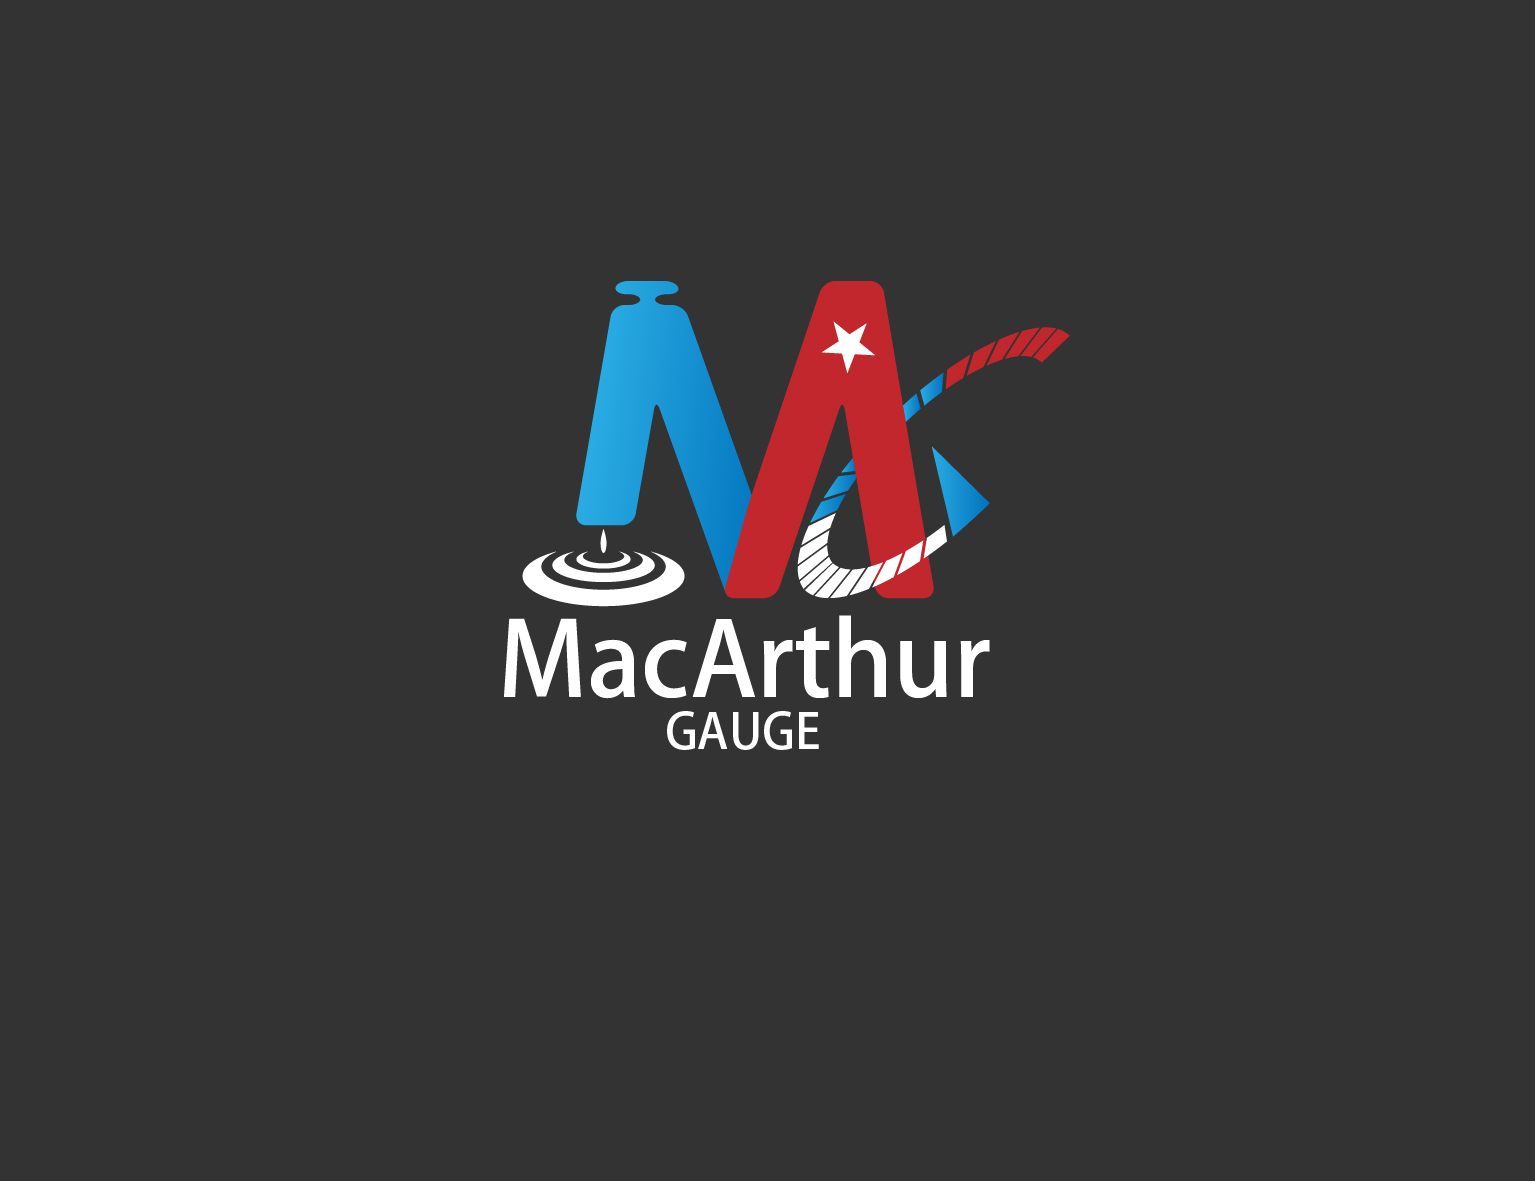 Logo Design by 3draw - Entry No. 214 in the Logo Design Contest Fun Logo Design for MacArthur Gauge.